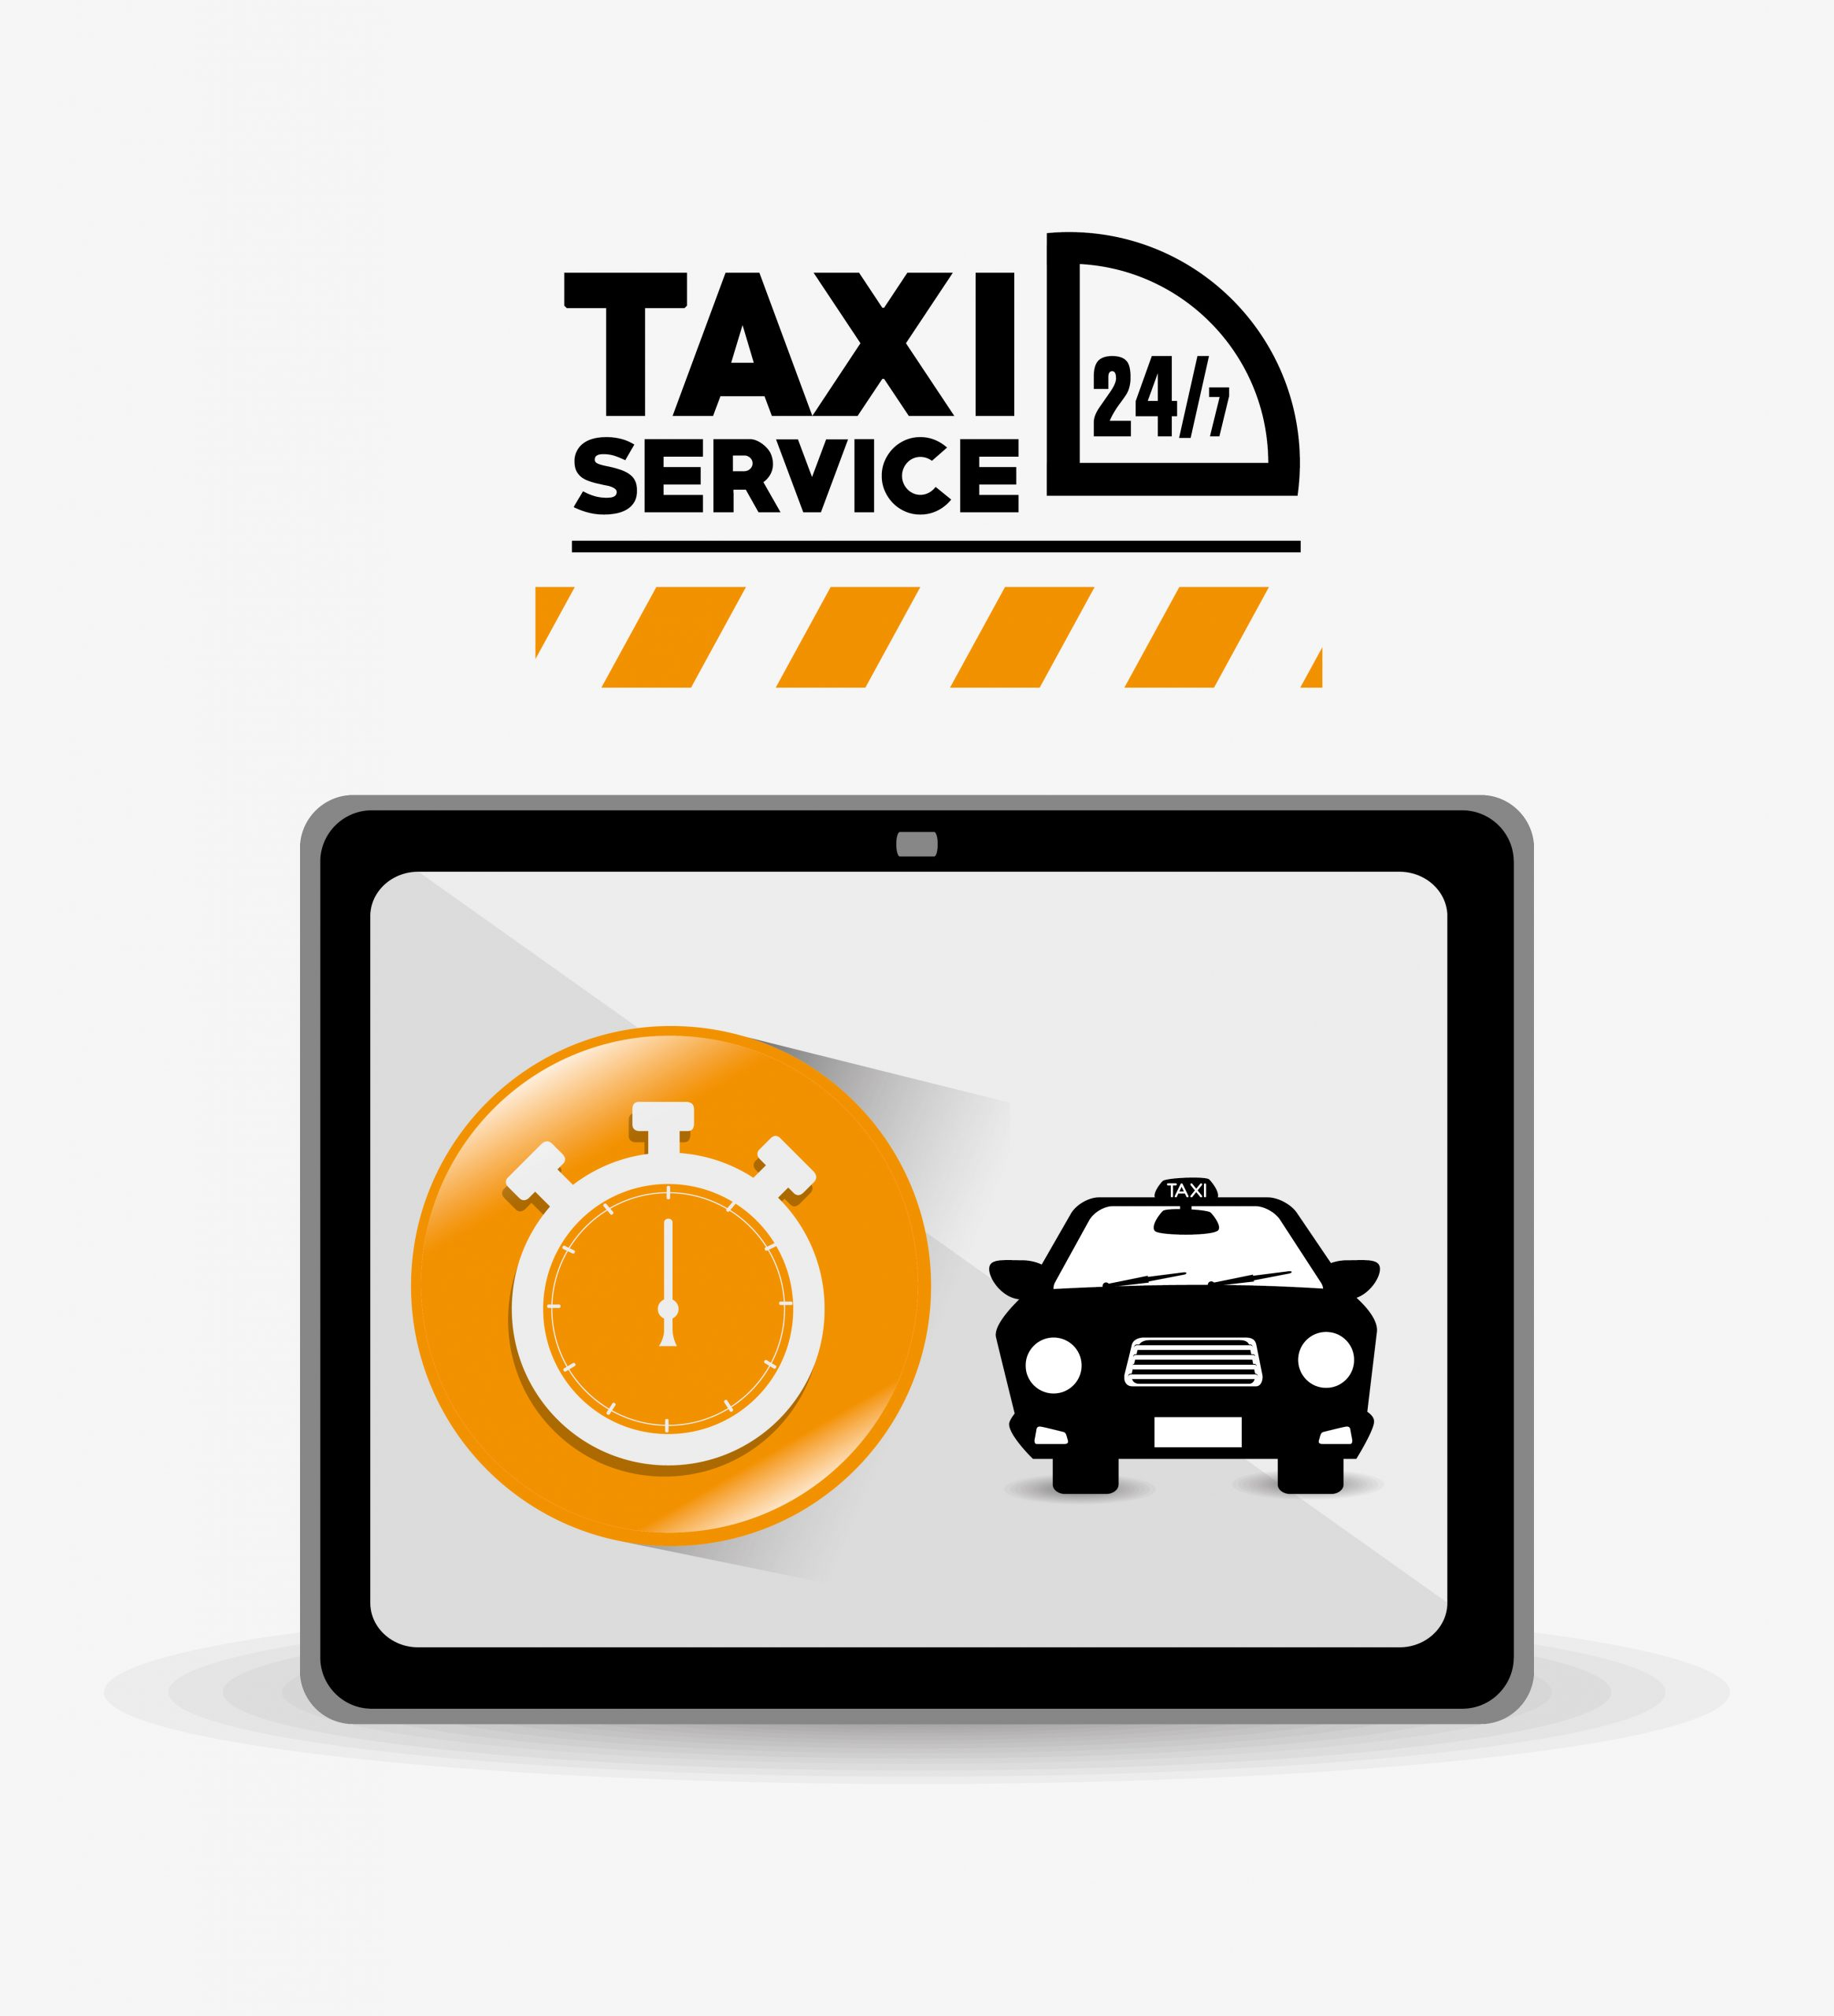 TAXI SERVICE BRUSSELS